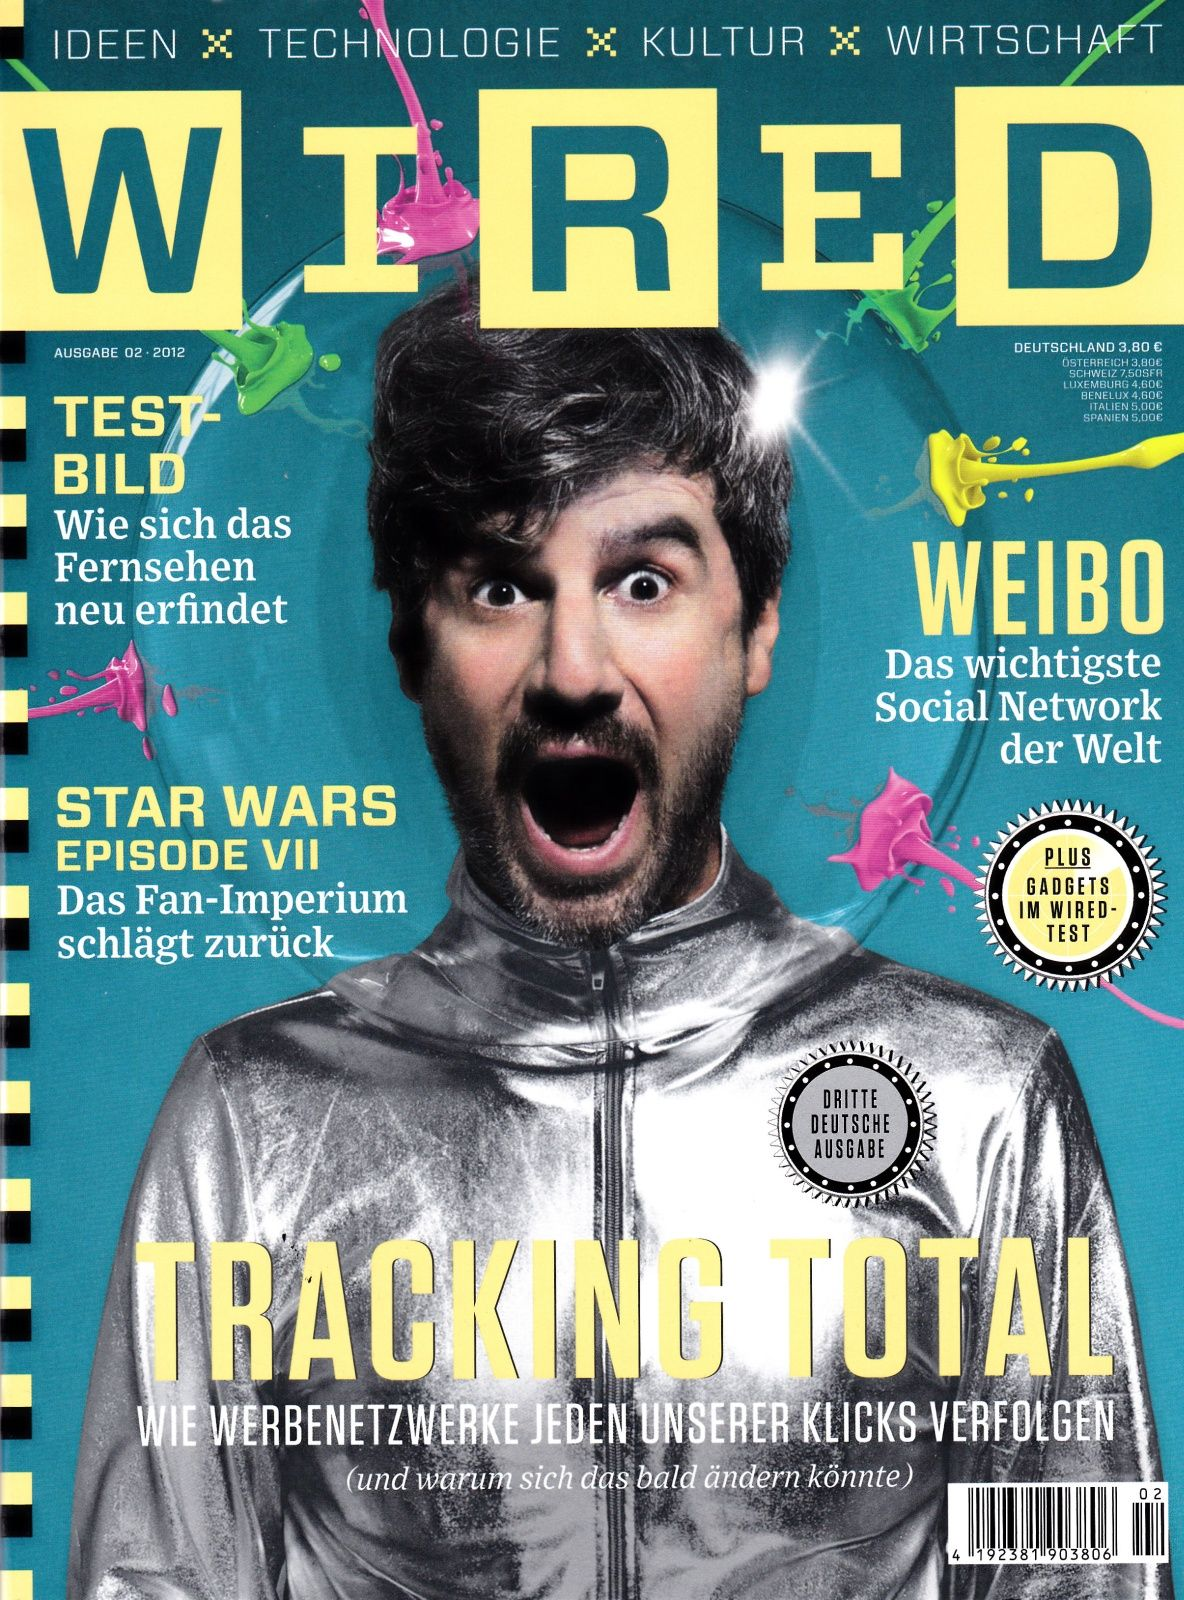 Promise of Wired Magazine that are less about the ebay for ...